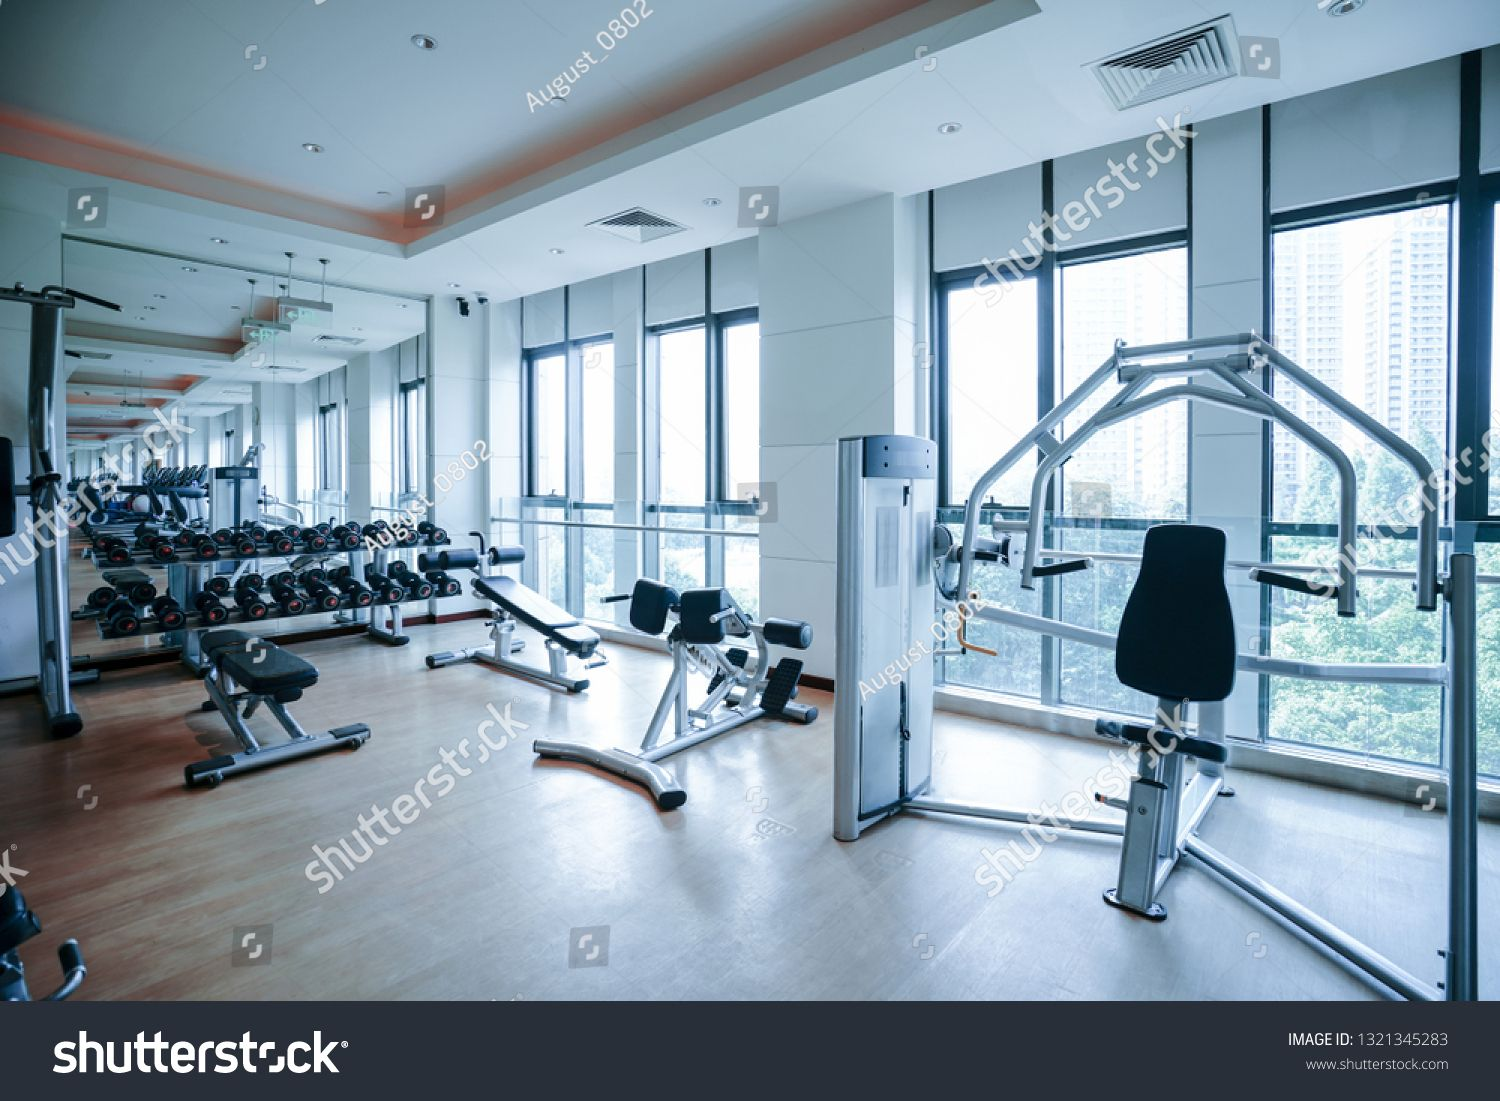 Modern Light Gym Sports Equipment In Gym Barbells Of Different Weight On Rack Ad Ad Gym Sports Modern Light Modern Lighting Gym